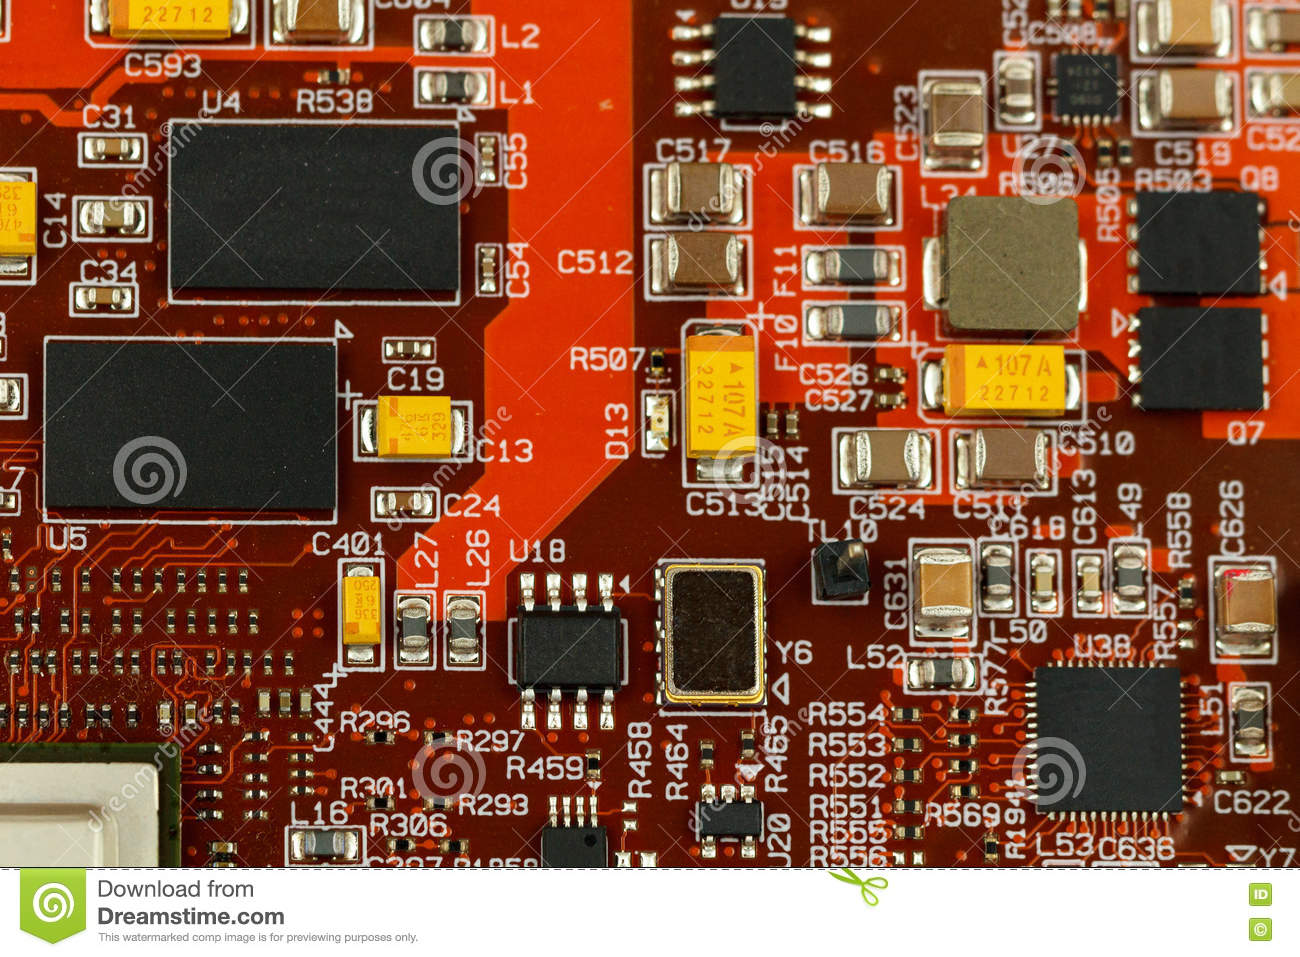 hight resolution of application specific integrated circuit ics chip capacitors tantalum capacitors and chip resistors mounted on a printed wiring board